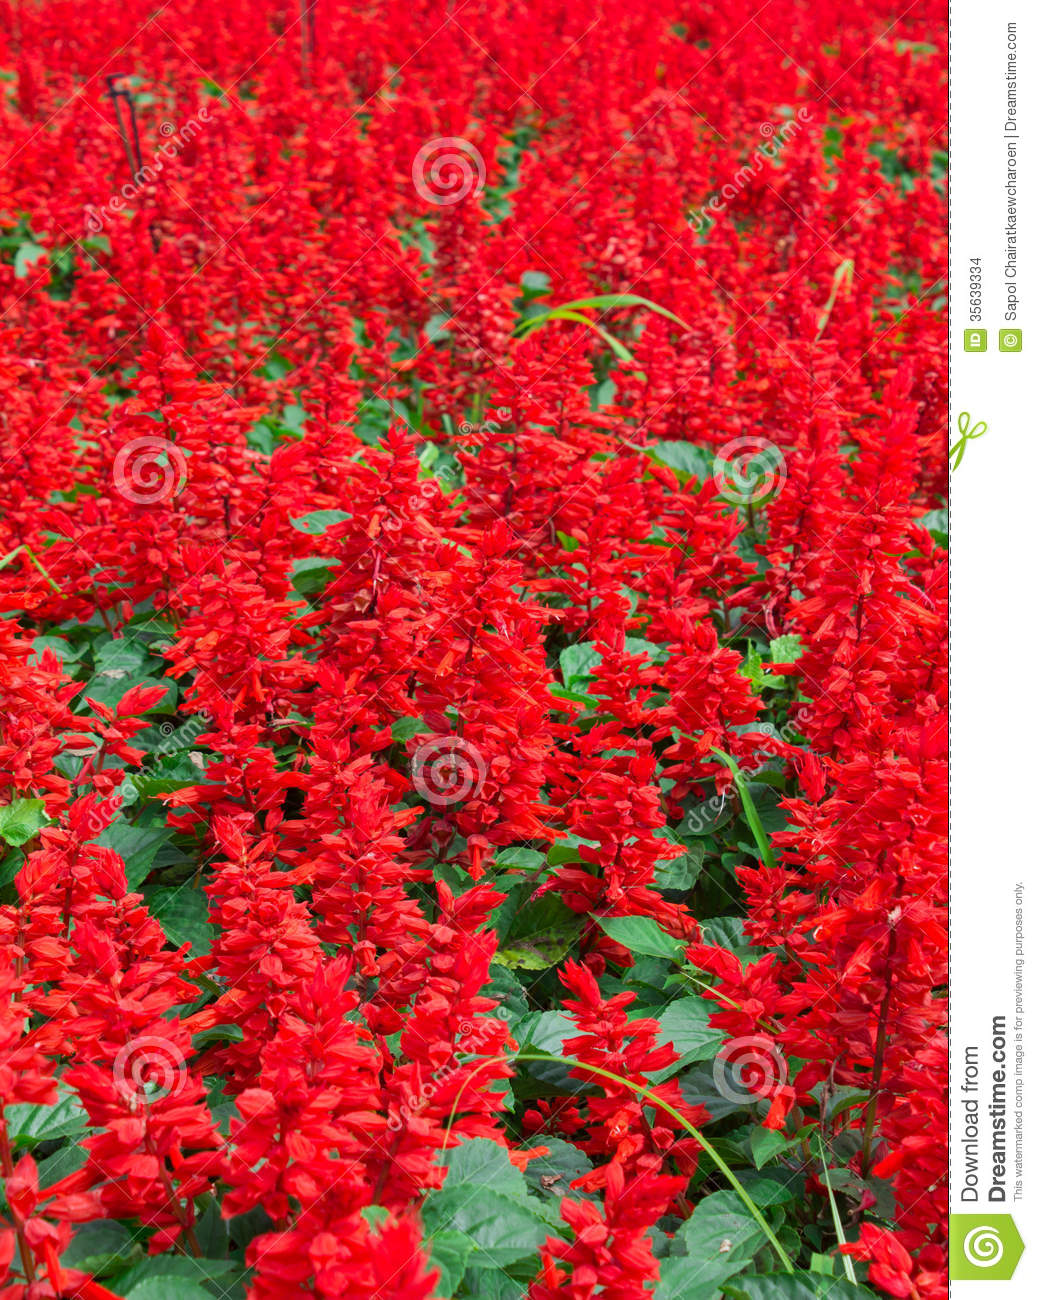 Red flower field stock photo. Image of natural, leaf - 35639334